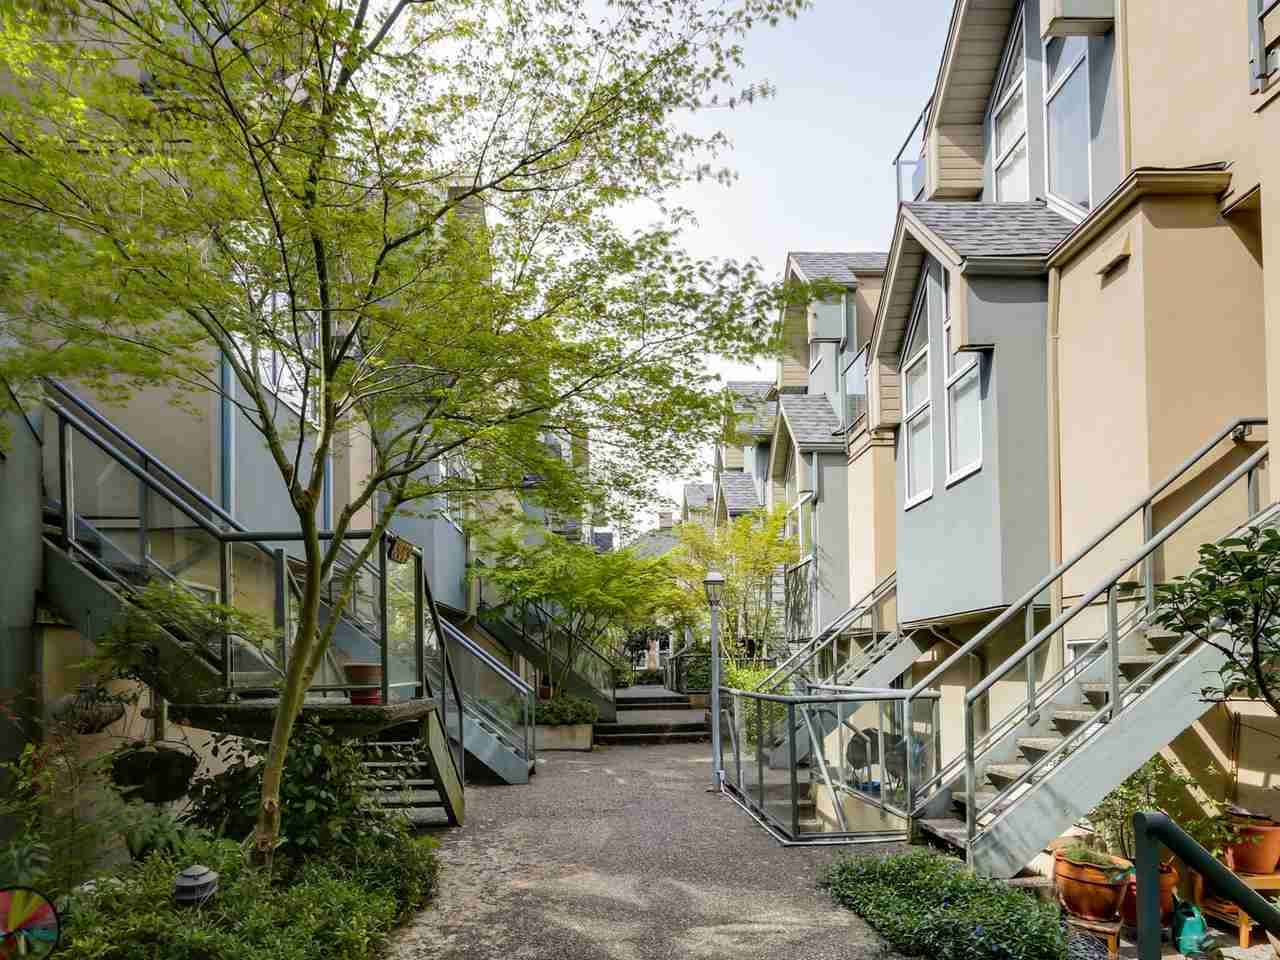 """Main Photo: 3011 LAUREL Street in Vancouver: Fairview VW Townhouse for sale in """"FAIRVIEW COURT"""" (Vancouver West)  : MLS®# R2058843"""